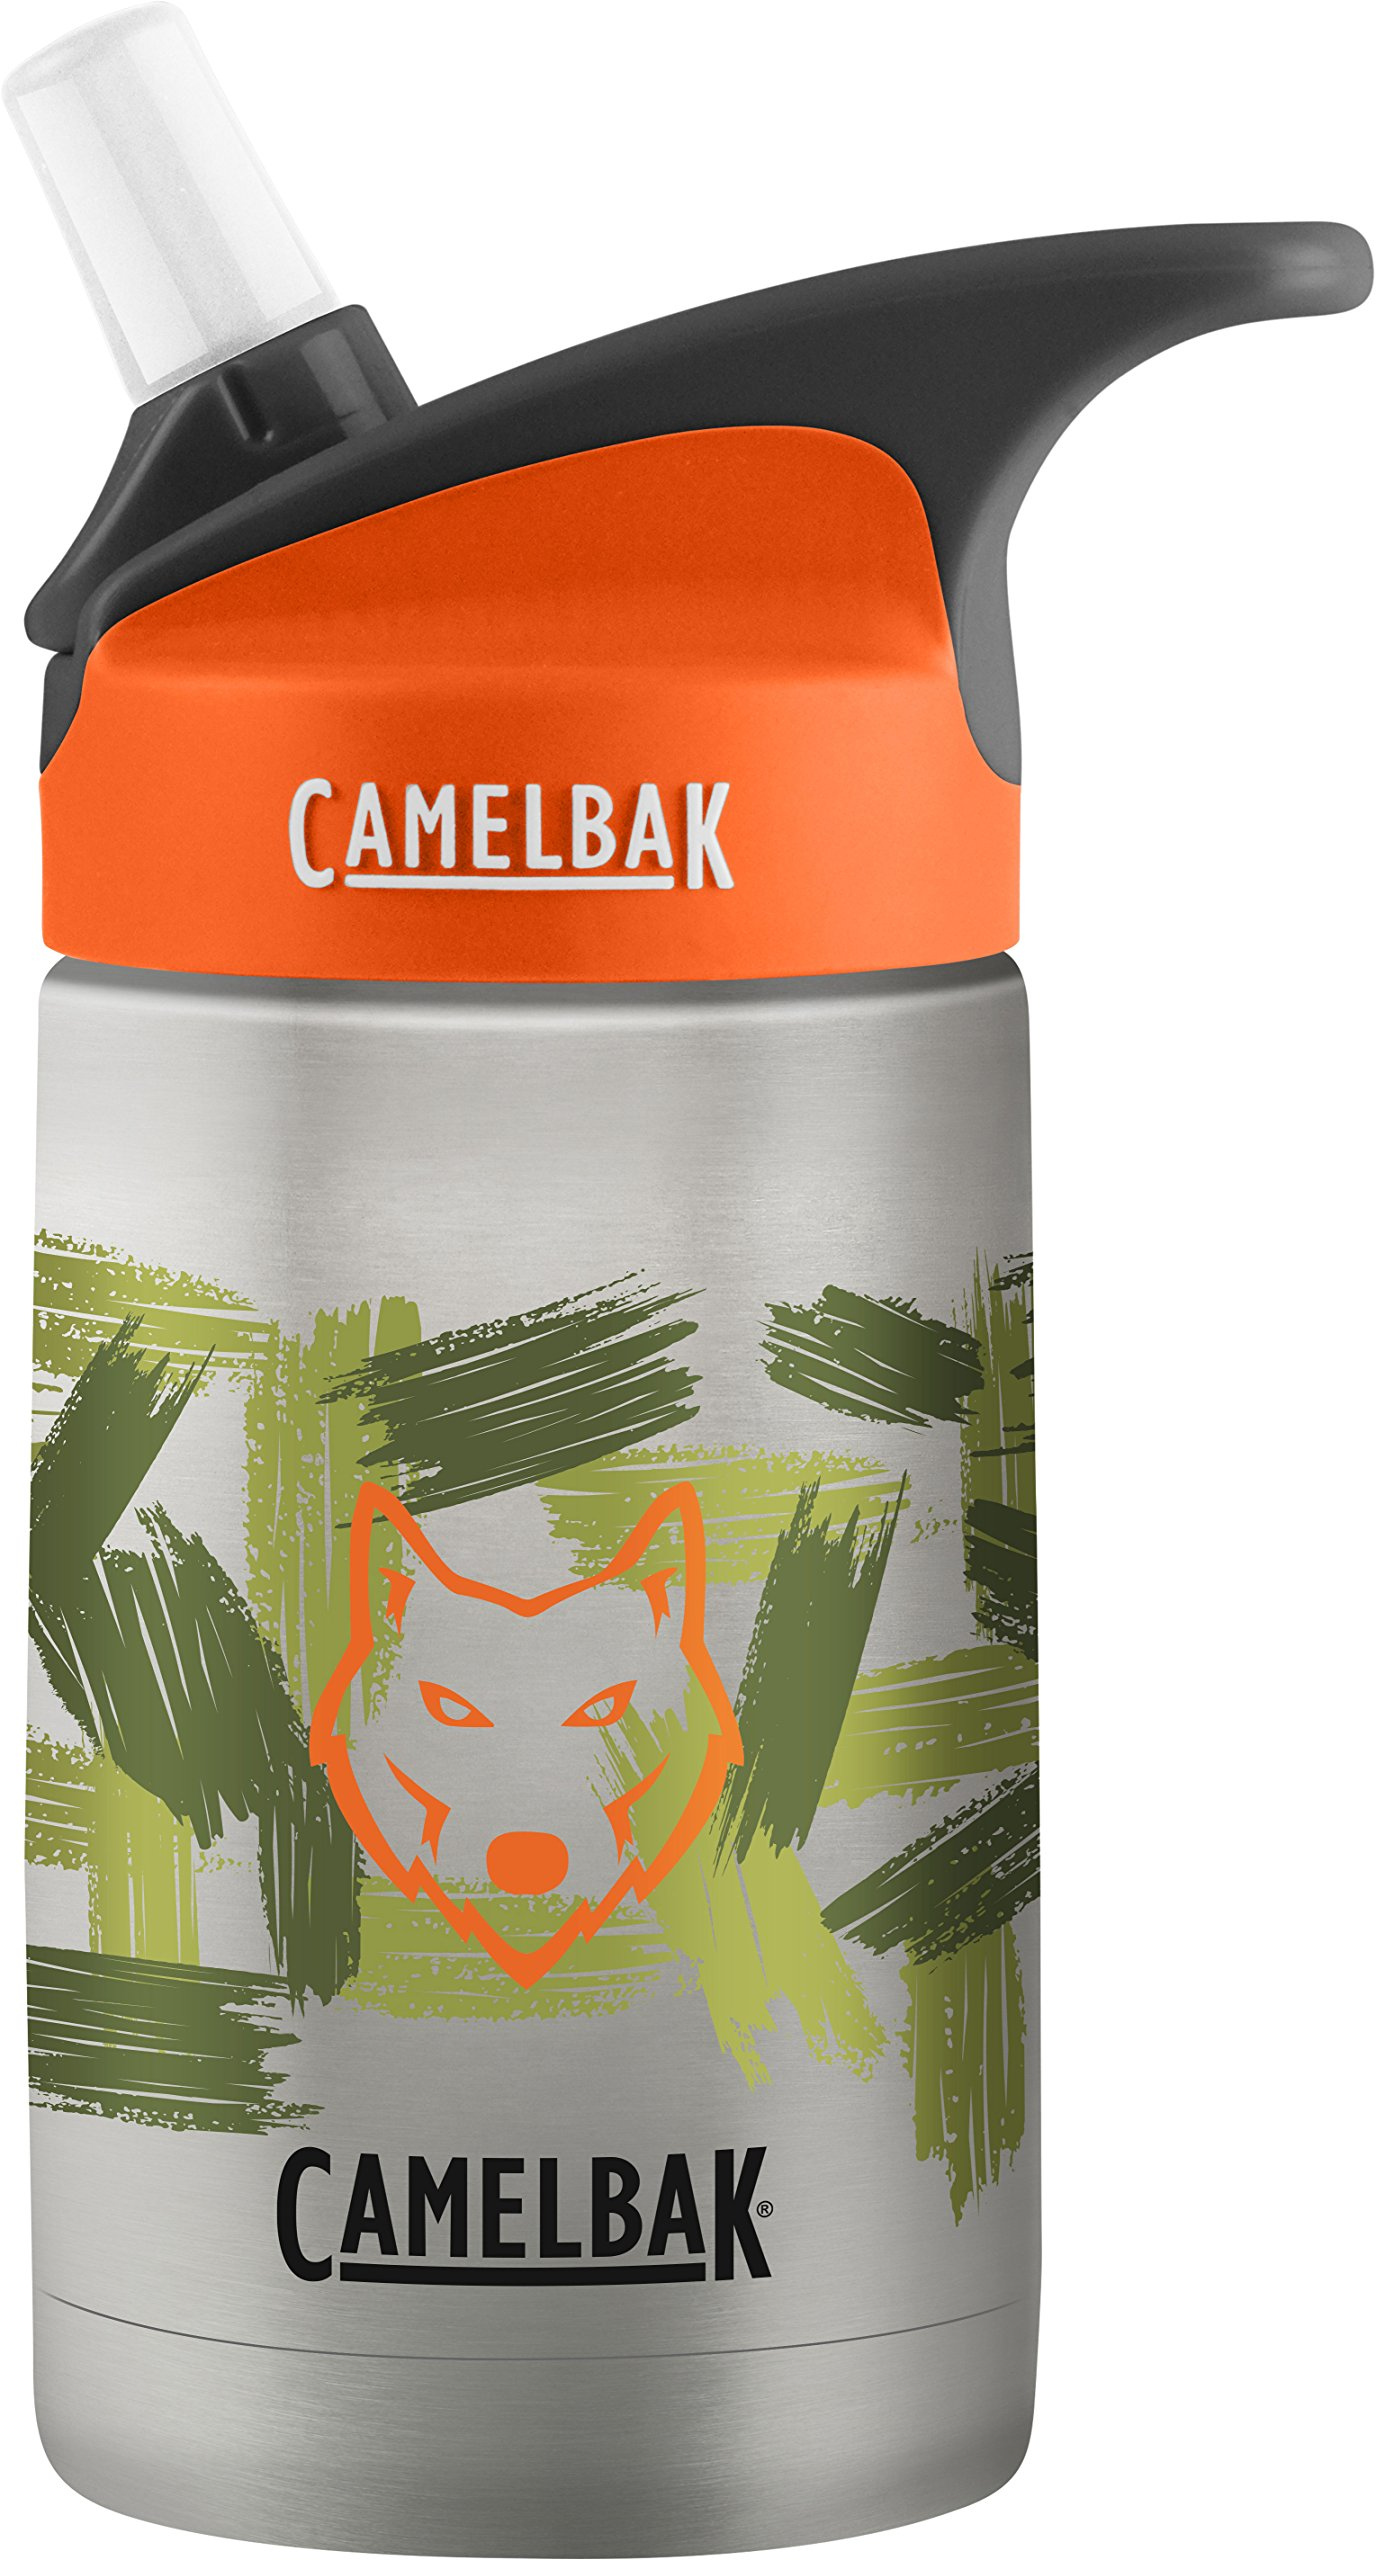 CamelBak Eddy Kids Vacuum Stainless Waterbottle, Wolf Camo, 12 oz by CamelBak